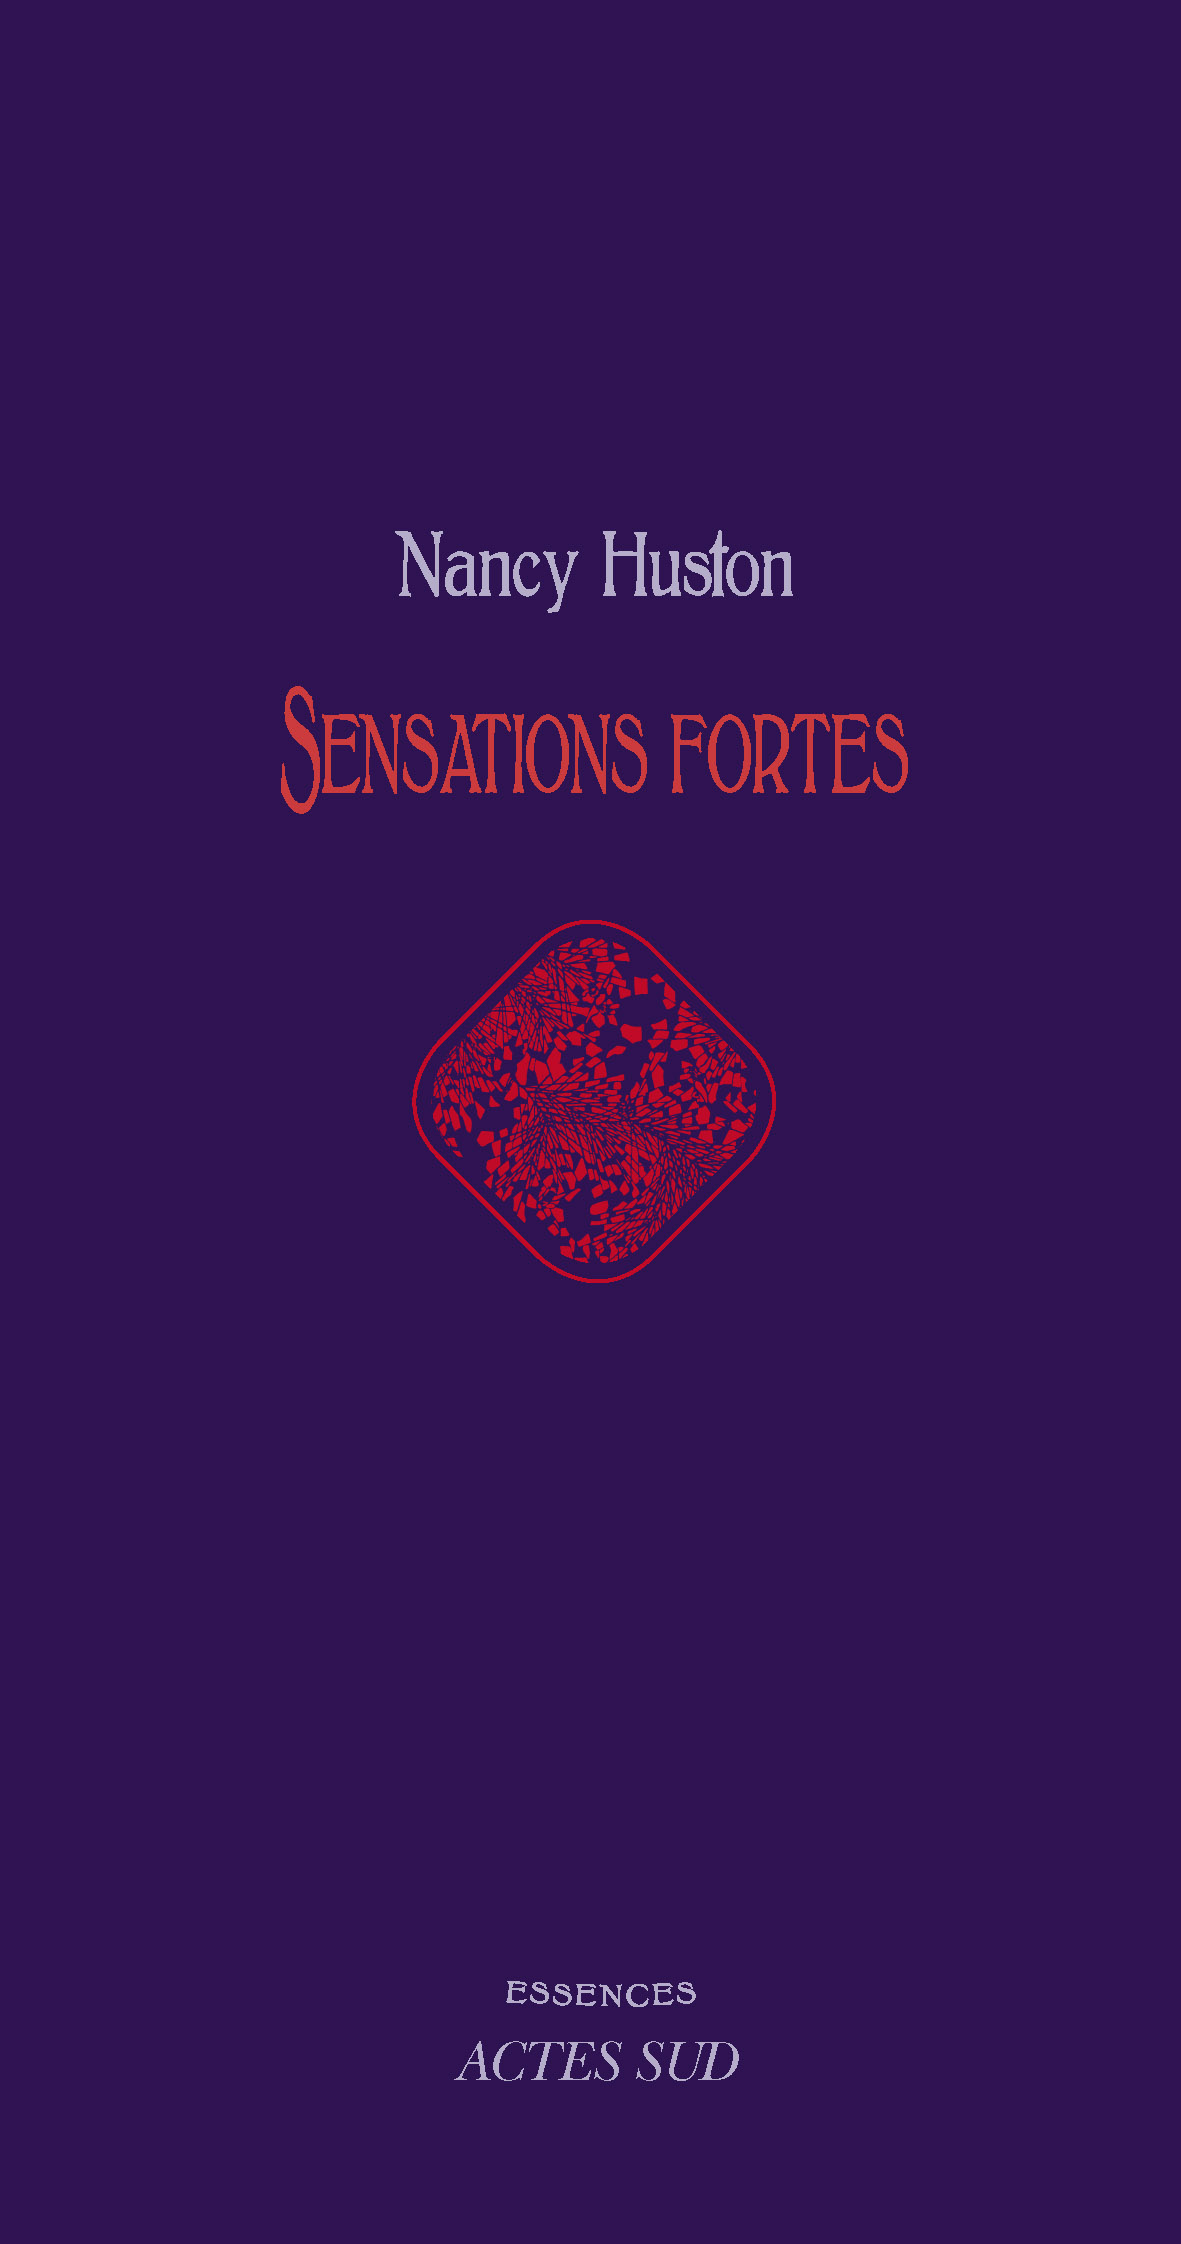 Sensations fortes - Nancy Huston